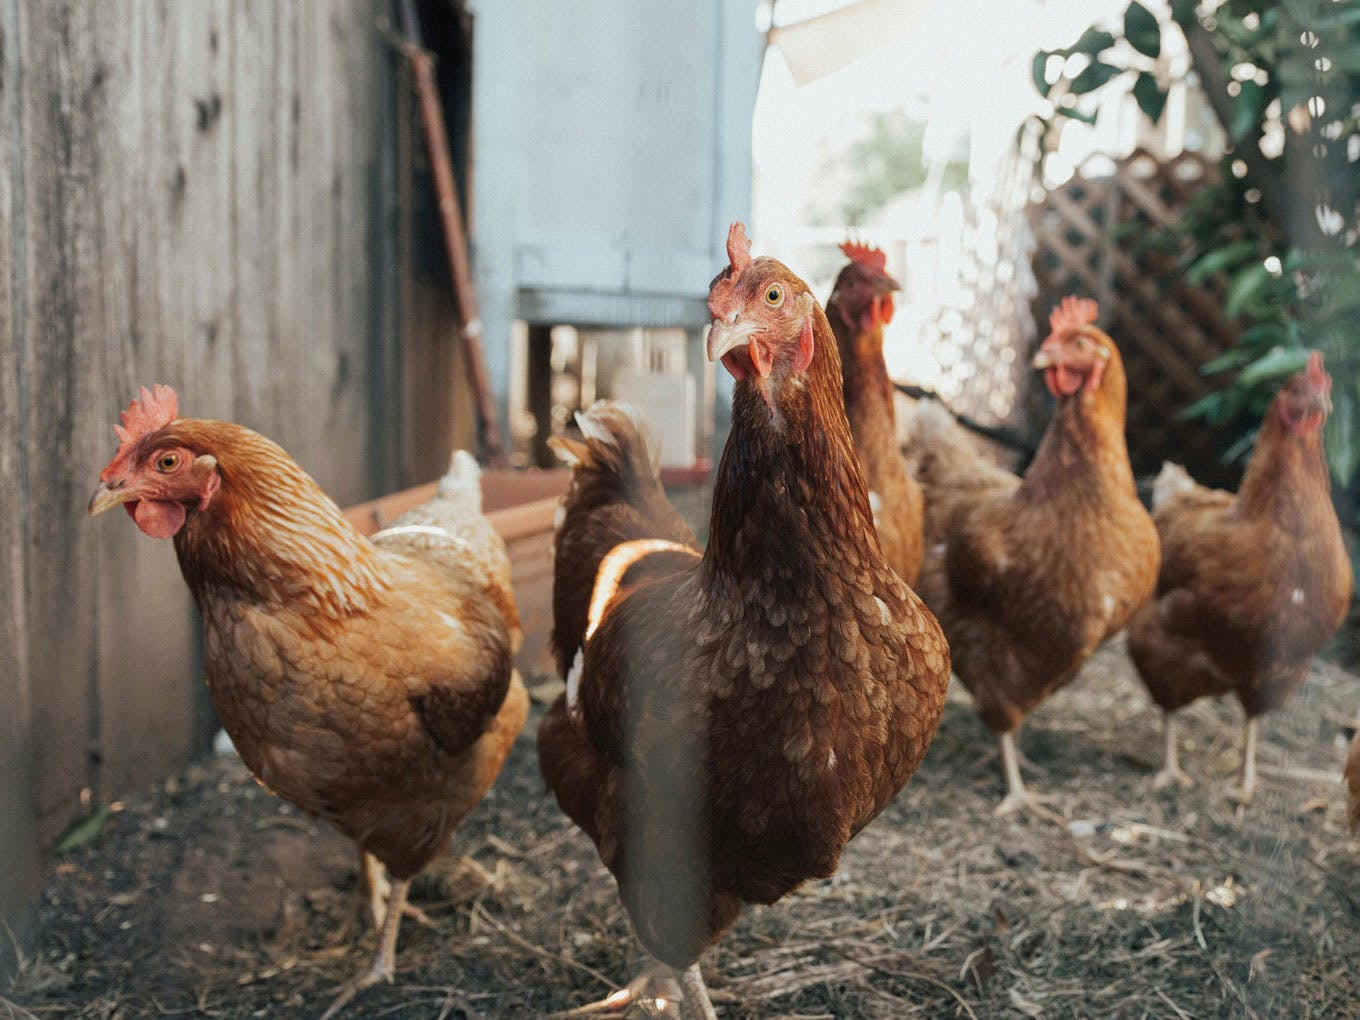 group of chickens